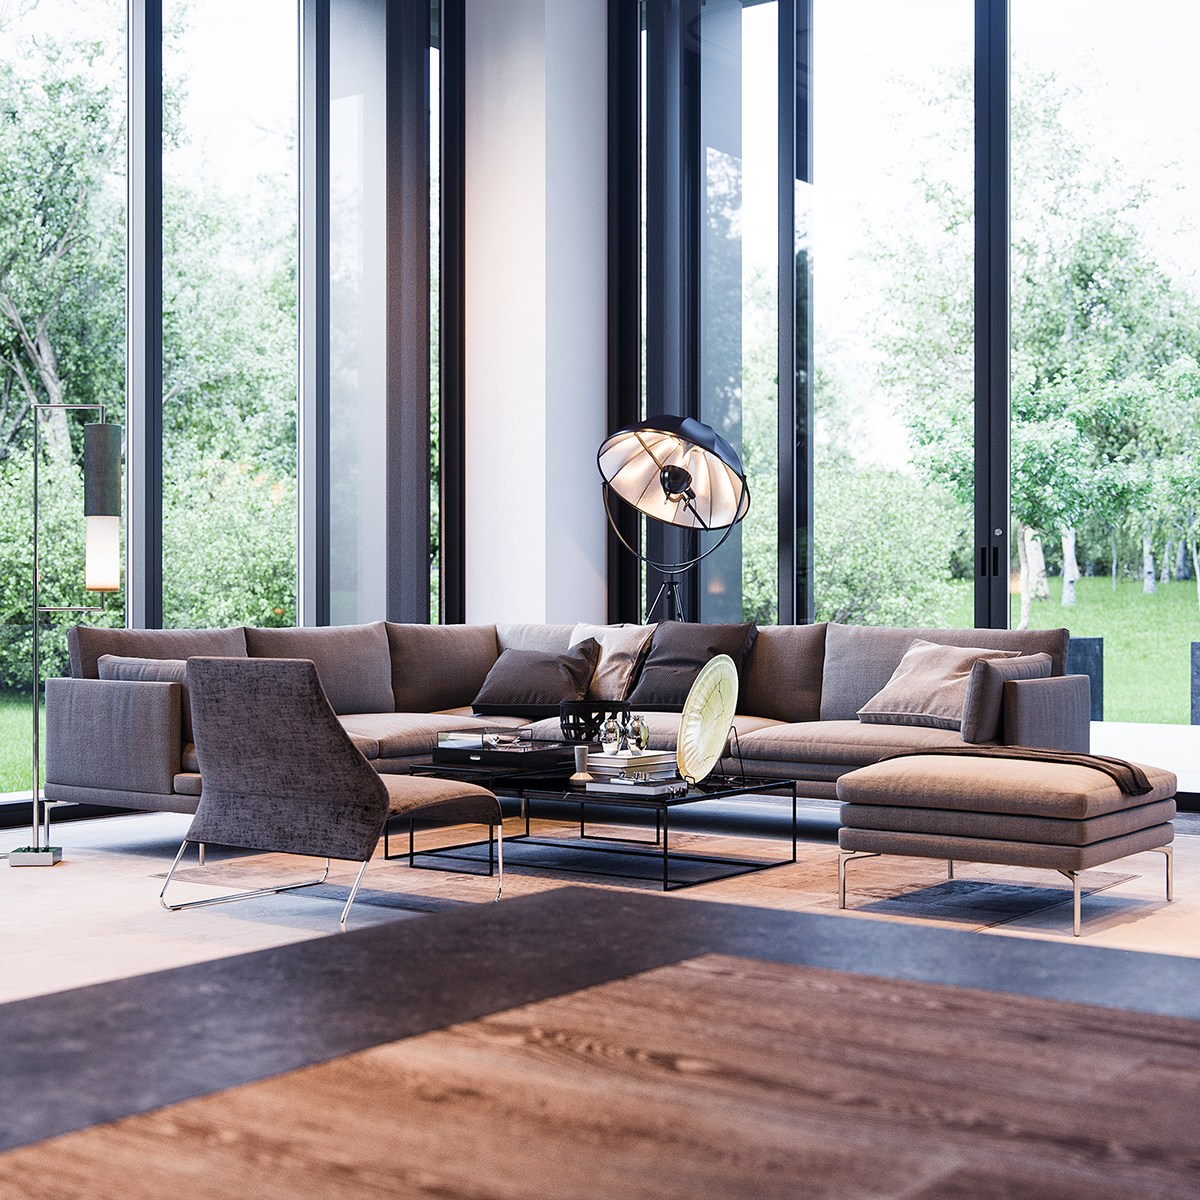 Floor To Ceiling Windows : Natural interior concepts with floor to ceiling windows